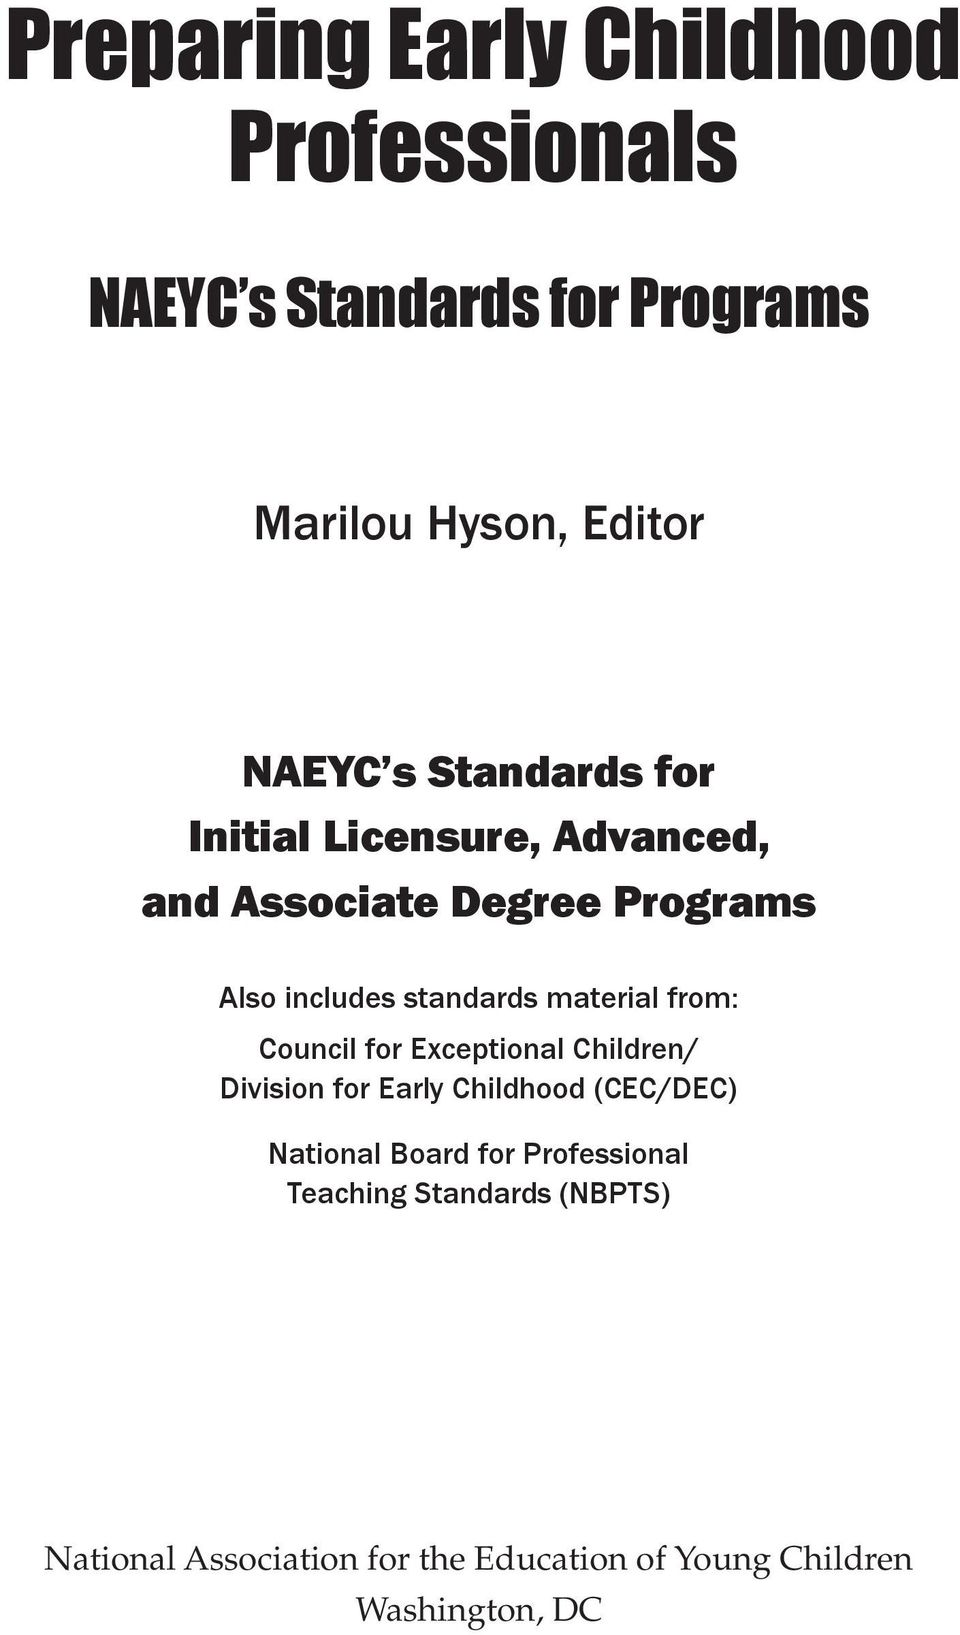 Exceptional Children/ Division for Early Childhood (CEC/DEC) National Board for Professional Teaching Standards